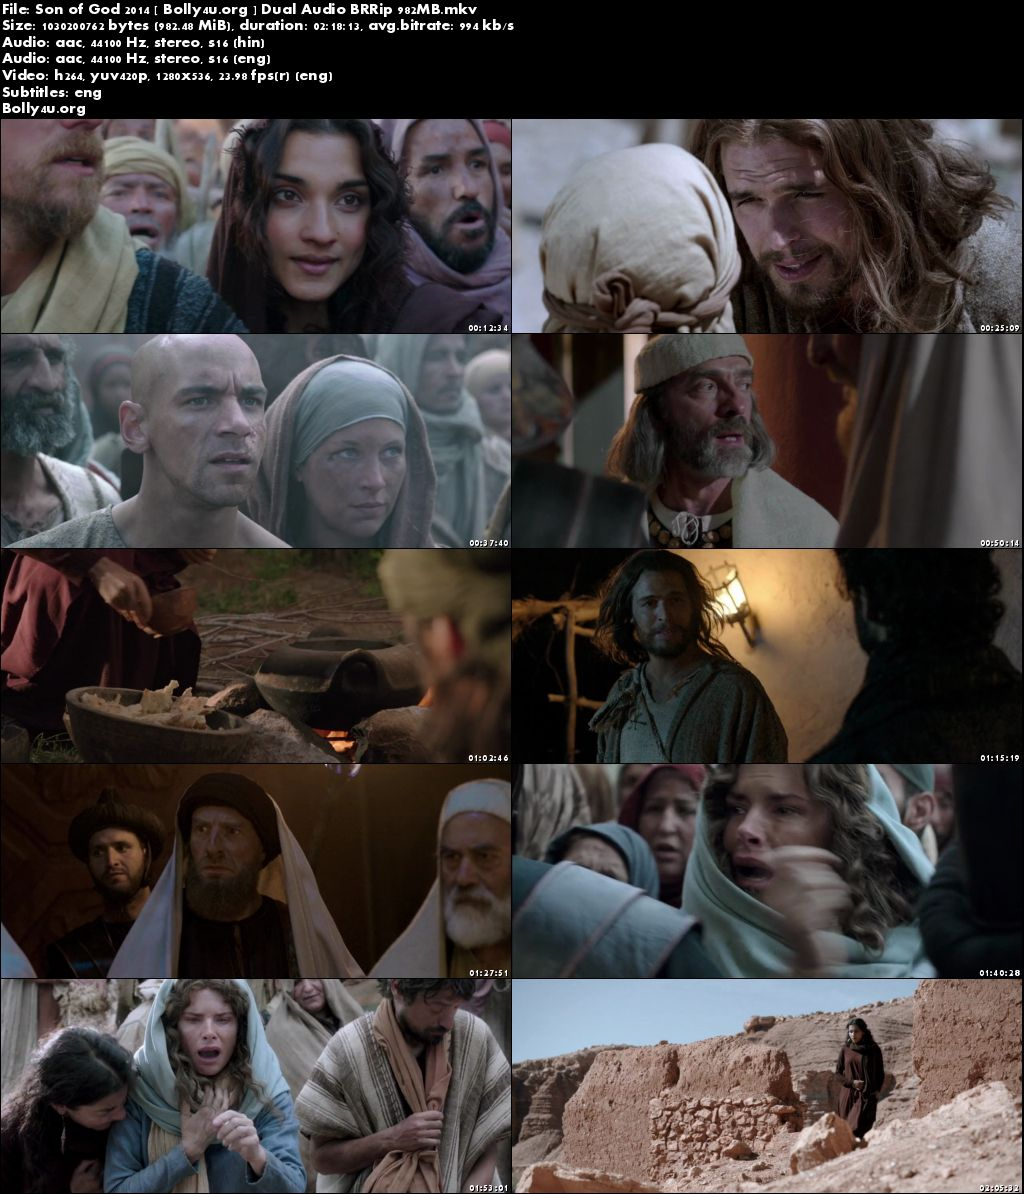 Son of God 2014 BluRay 950MB Hindi Dual Audio 720p Download